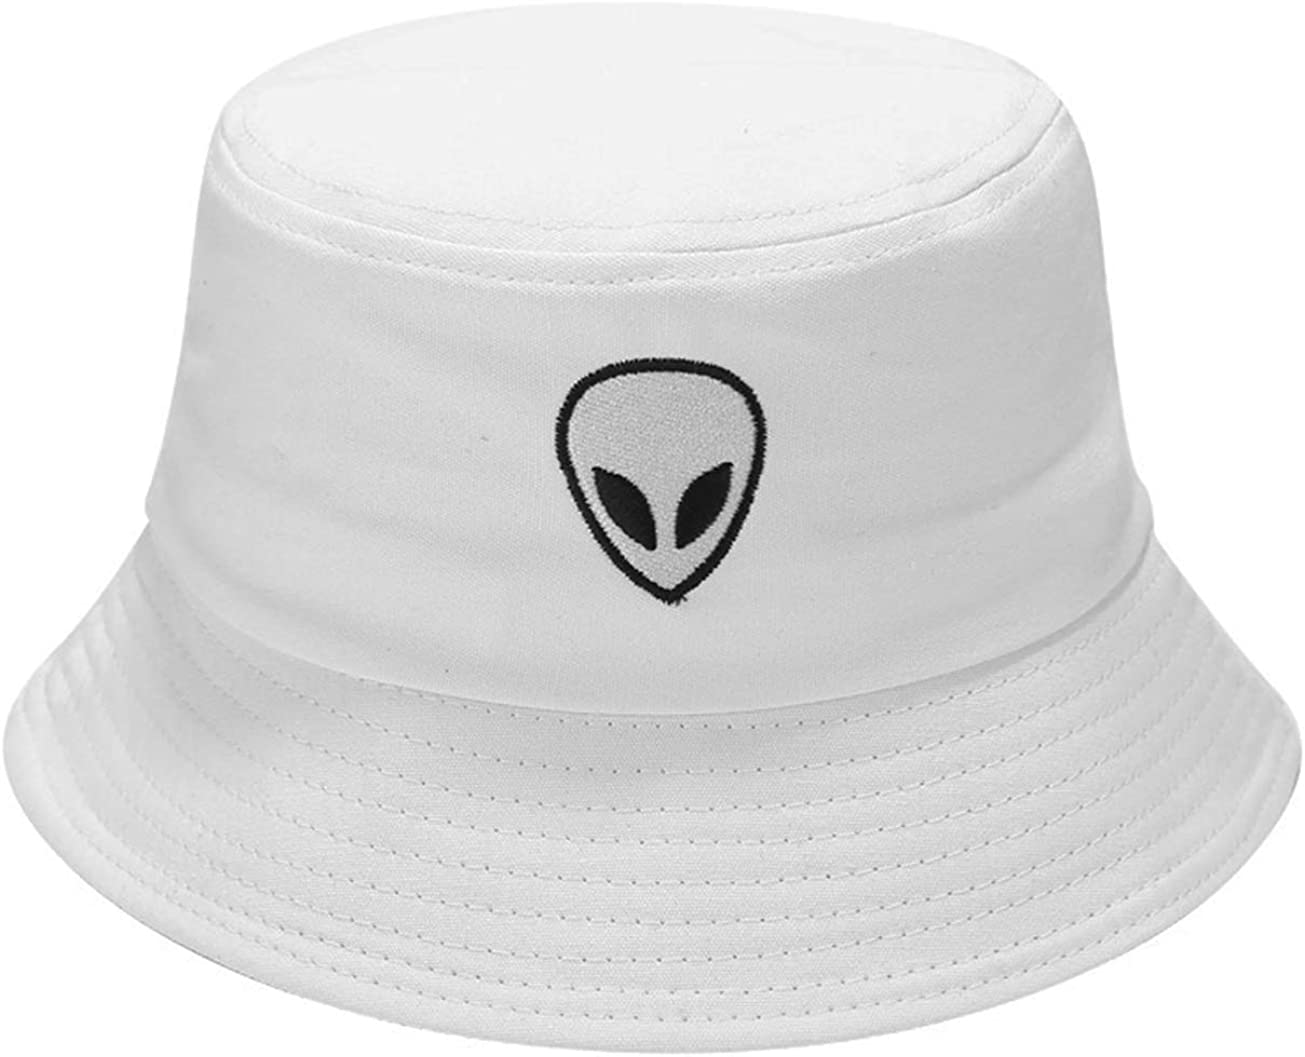 Alien Embroidered Bucket...